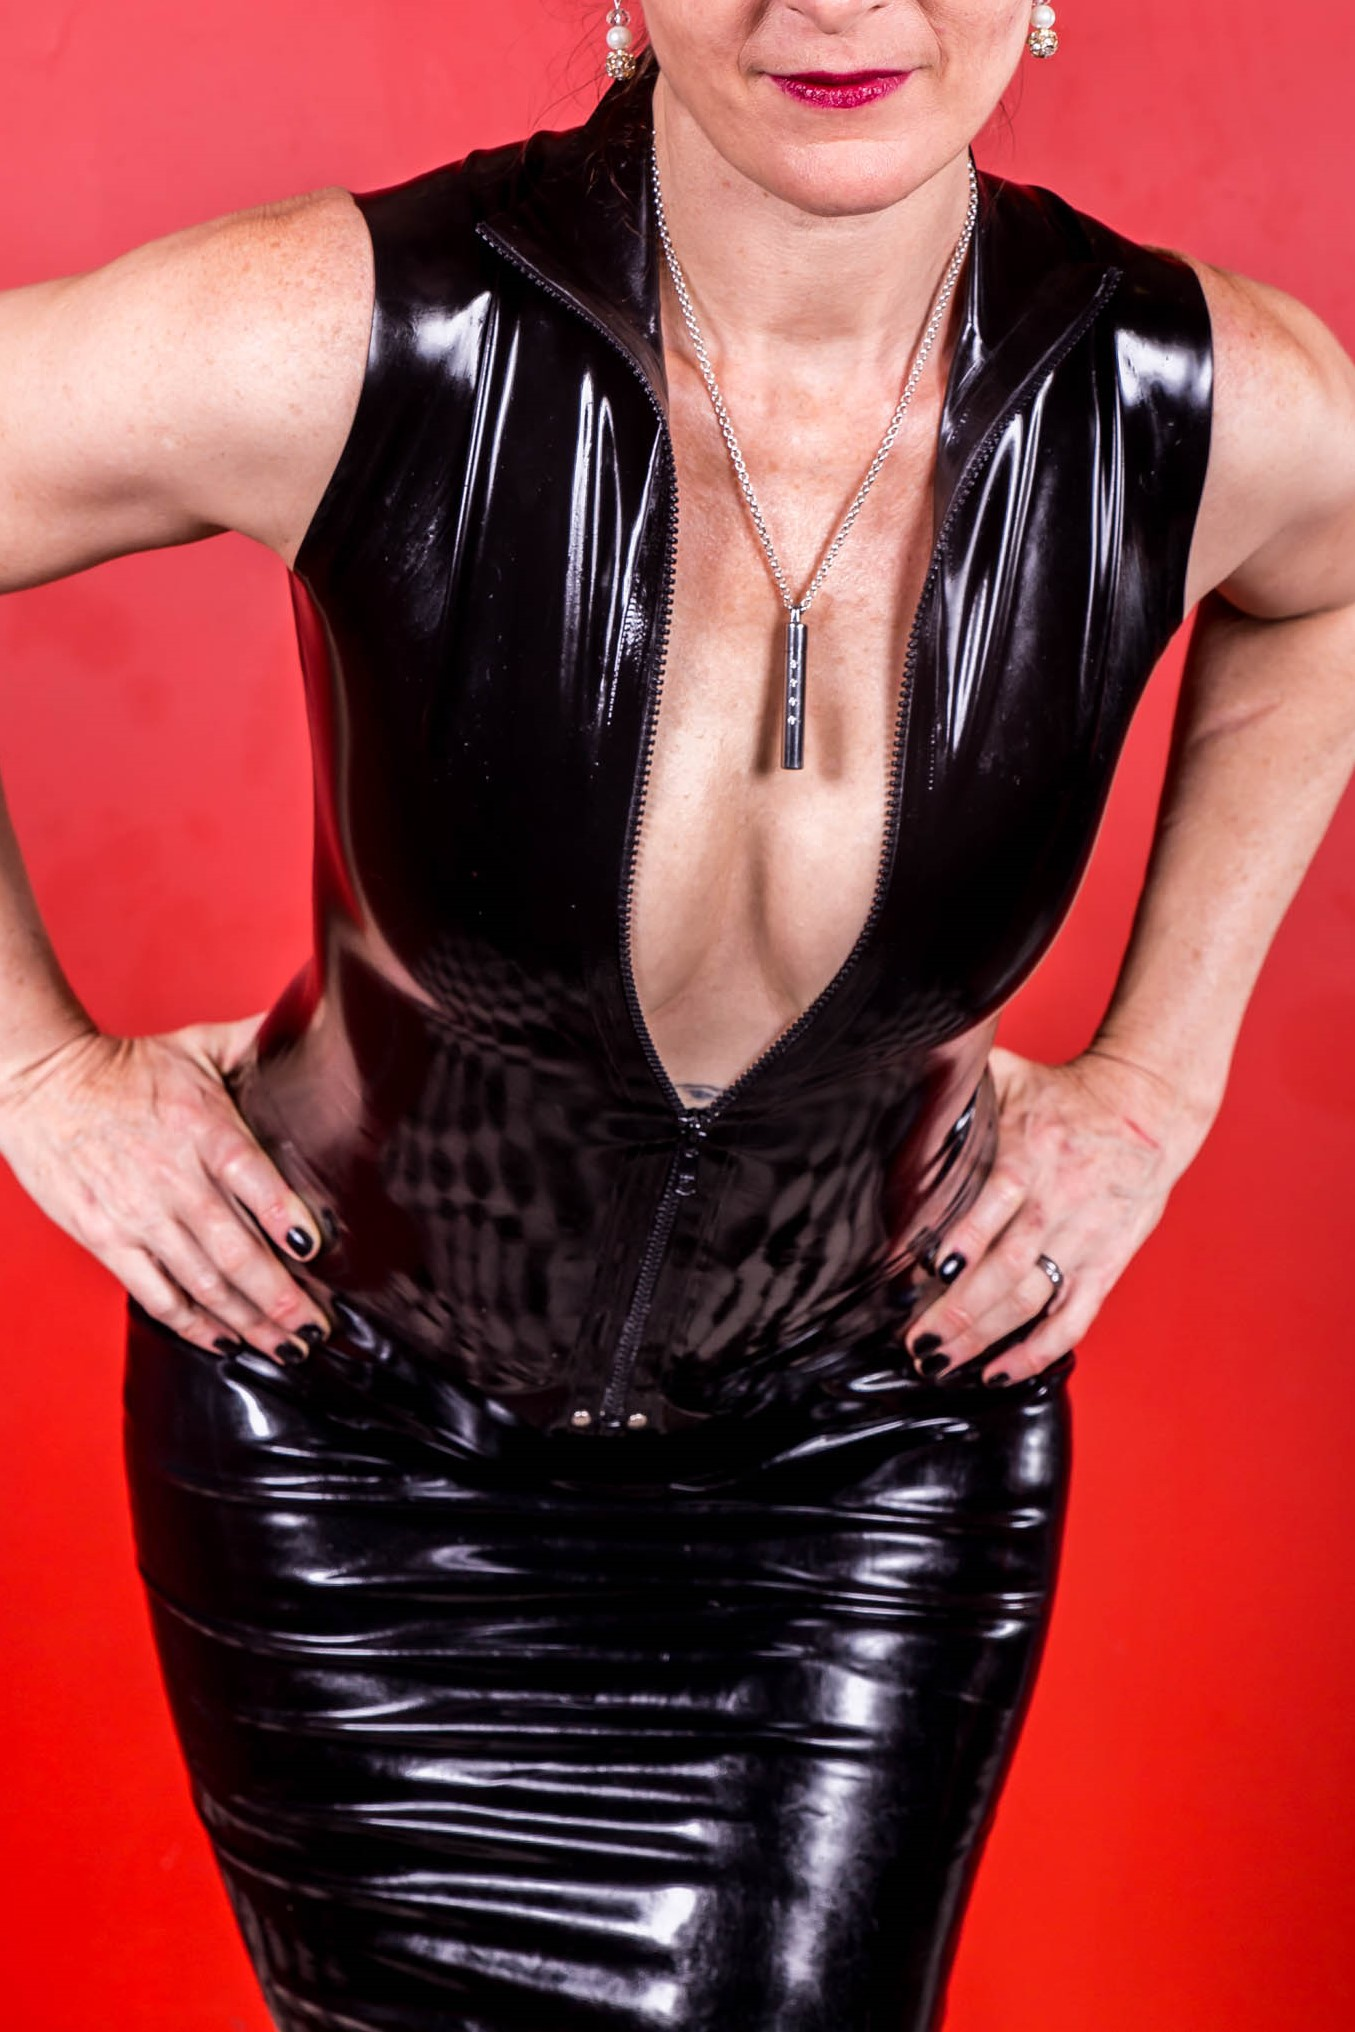 Interview with Priestess Desire – Gold Coast & Brisbane Based Pro Domme